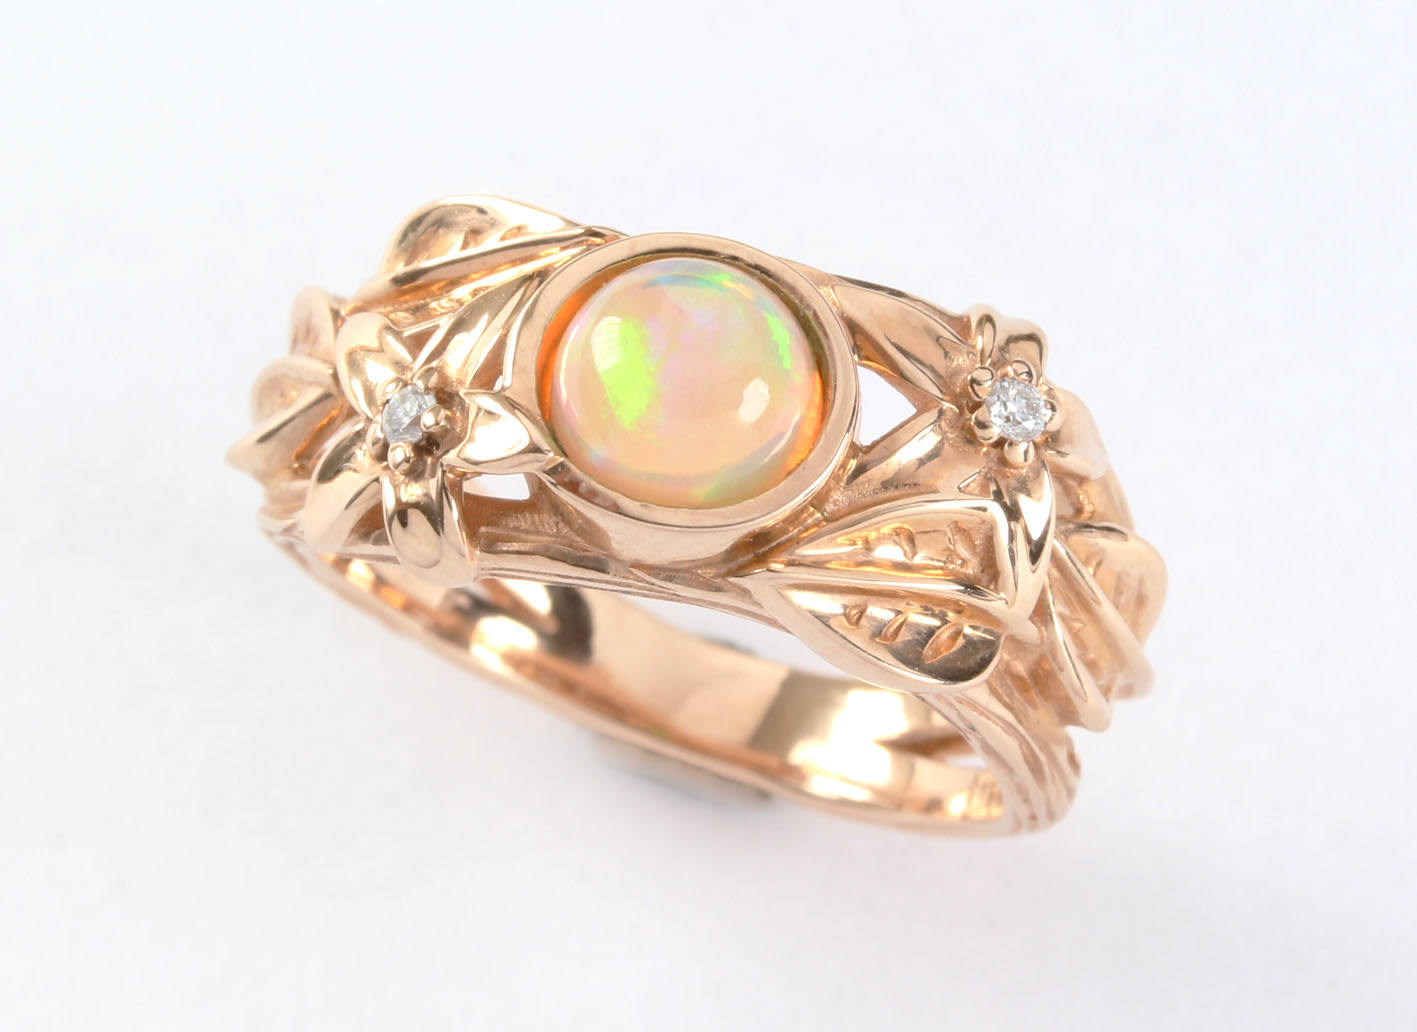 Ethiopian Opal Engagement Ring in Sterling Silver Birthstone Ring,thanksgiving gift Opal Wedding Ring Opal Ring Ethiopian Opal Jewelry